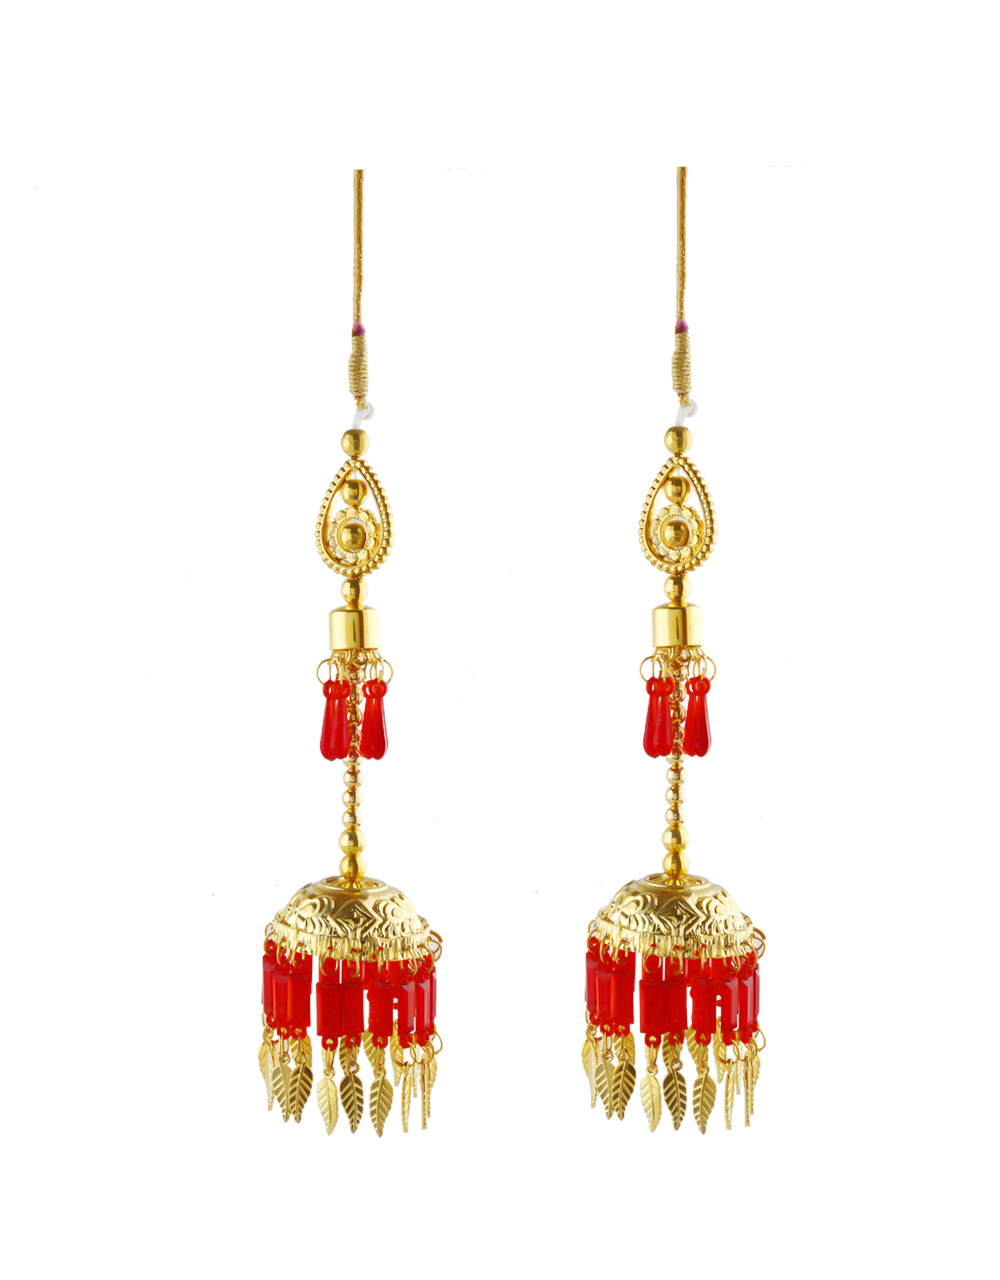 Fancy Red Colour Suhag Kalire For Bride Wedding Jewellery